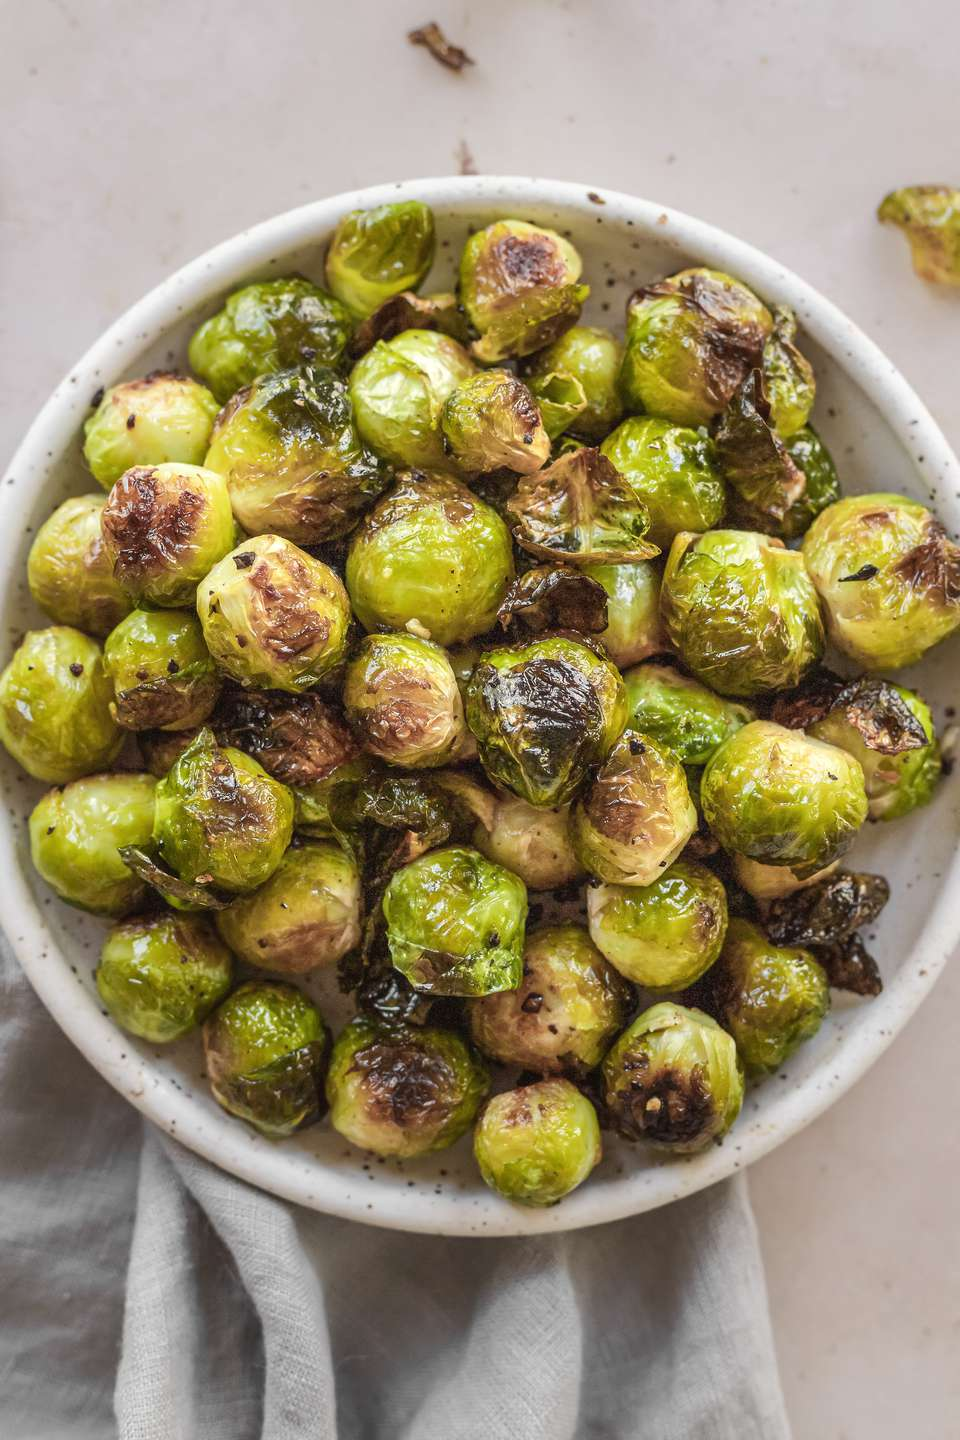 Overhead view of a serving dish of oven roasted brussel sprouts.